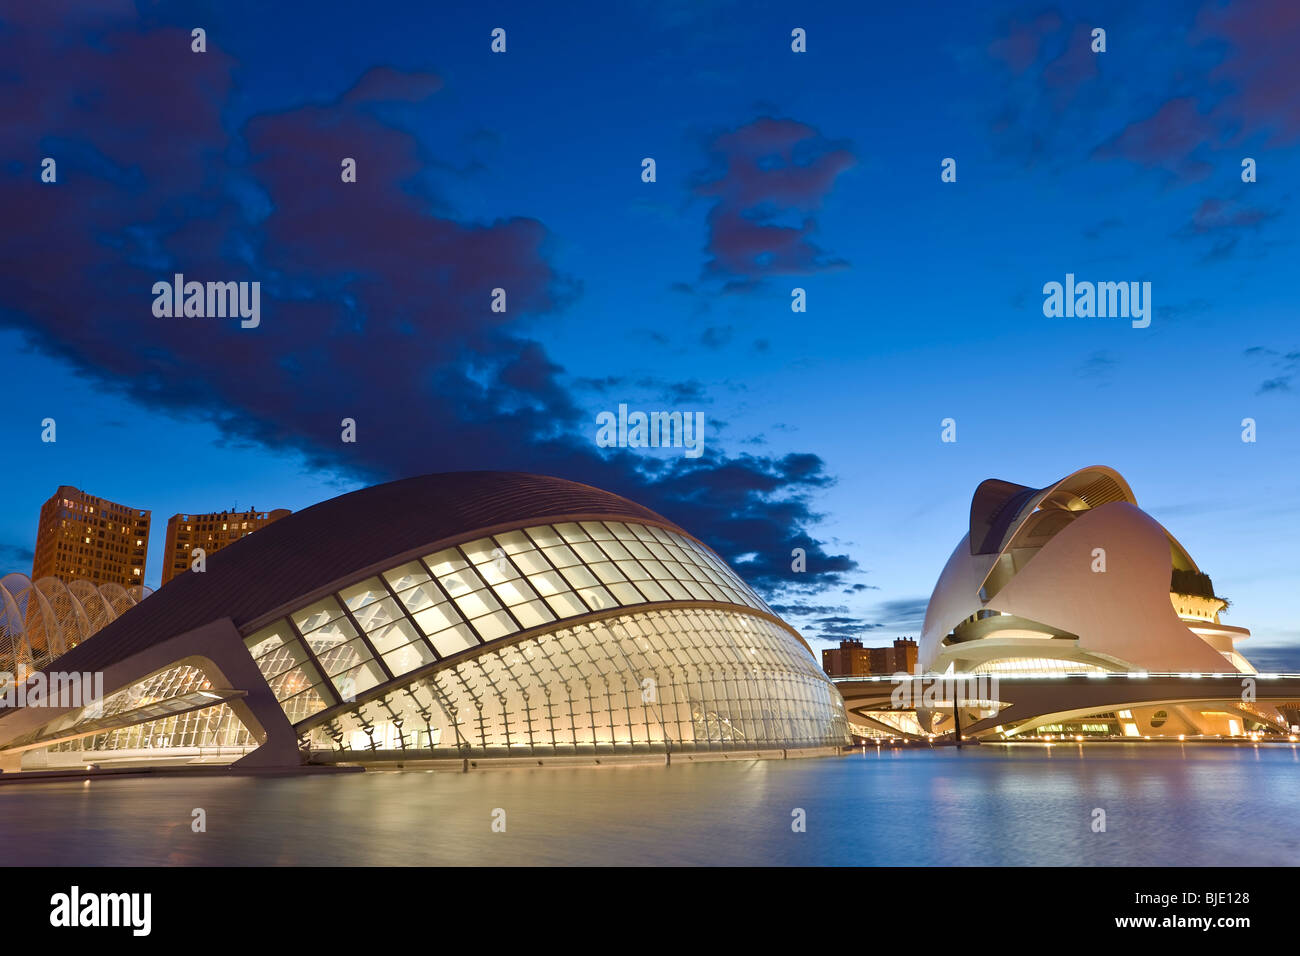 Spain Valencia the City of Arts and Sciences building Ciudad de las Artes y de las Ciencias a combined science museum - Stock Image